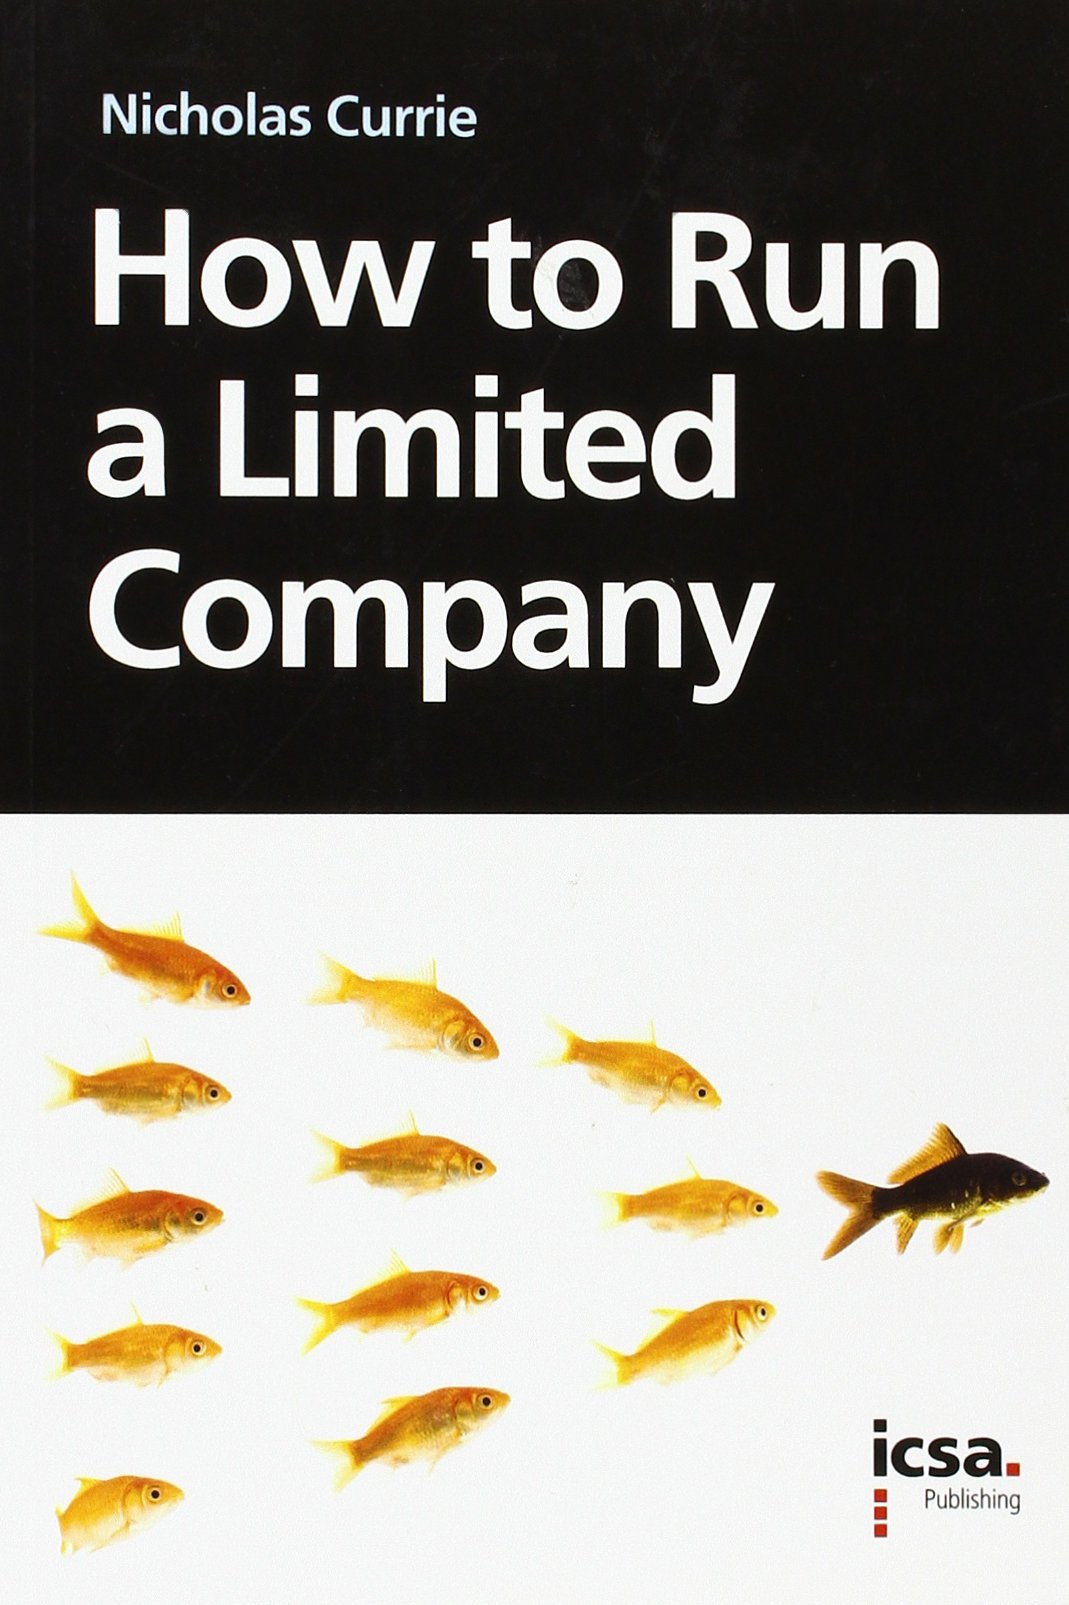 Bringing the cost of setting up a limited company down